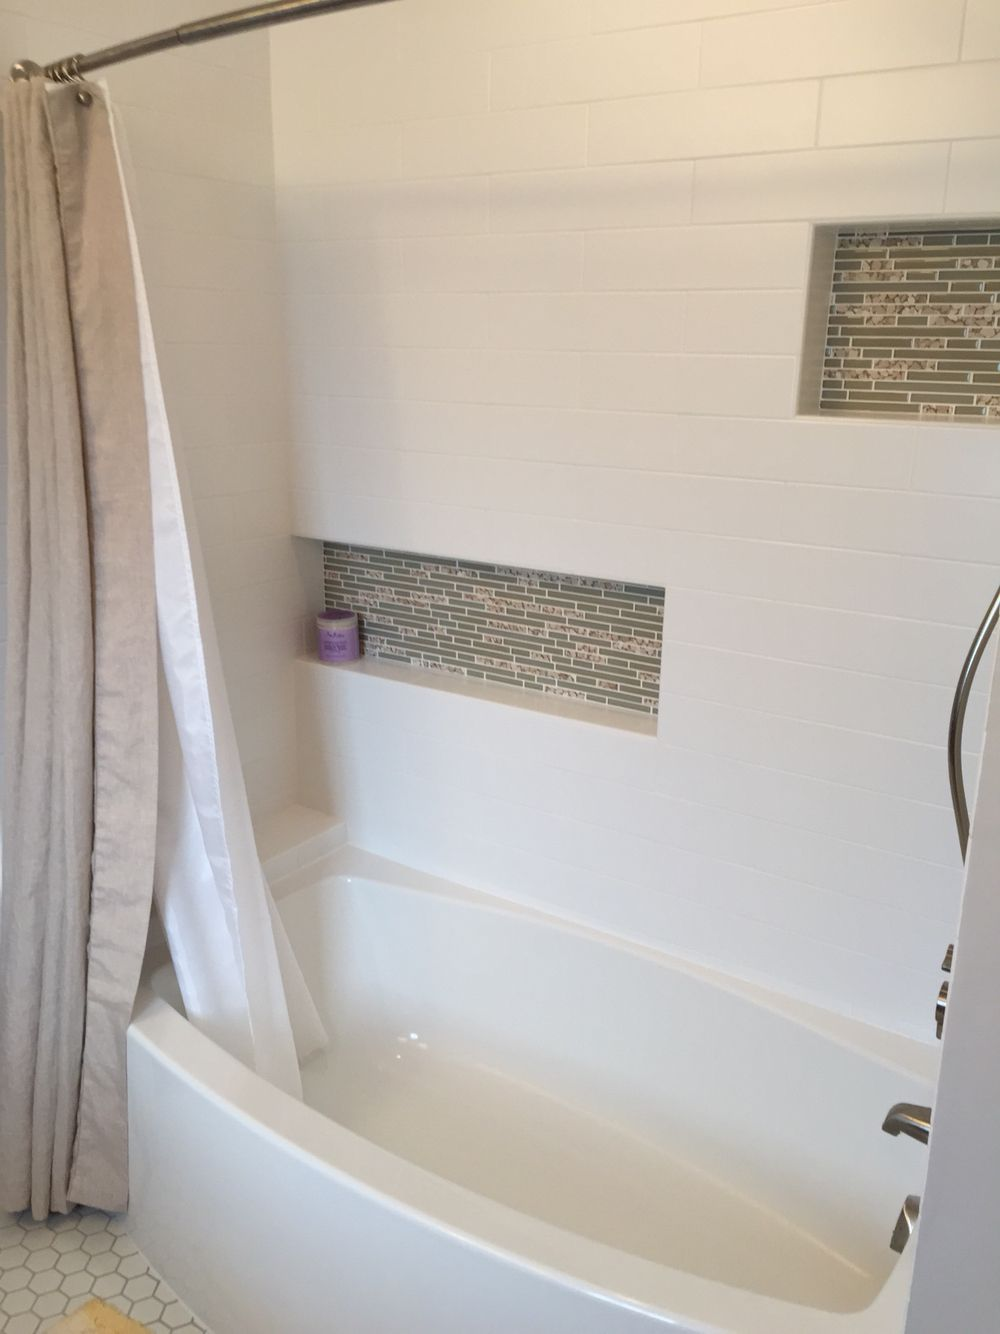 Recessed Offset Shower Niches For Lots Of Storage Linen Bath Curtain From Pottery Barn Large Matte White Subway Tile